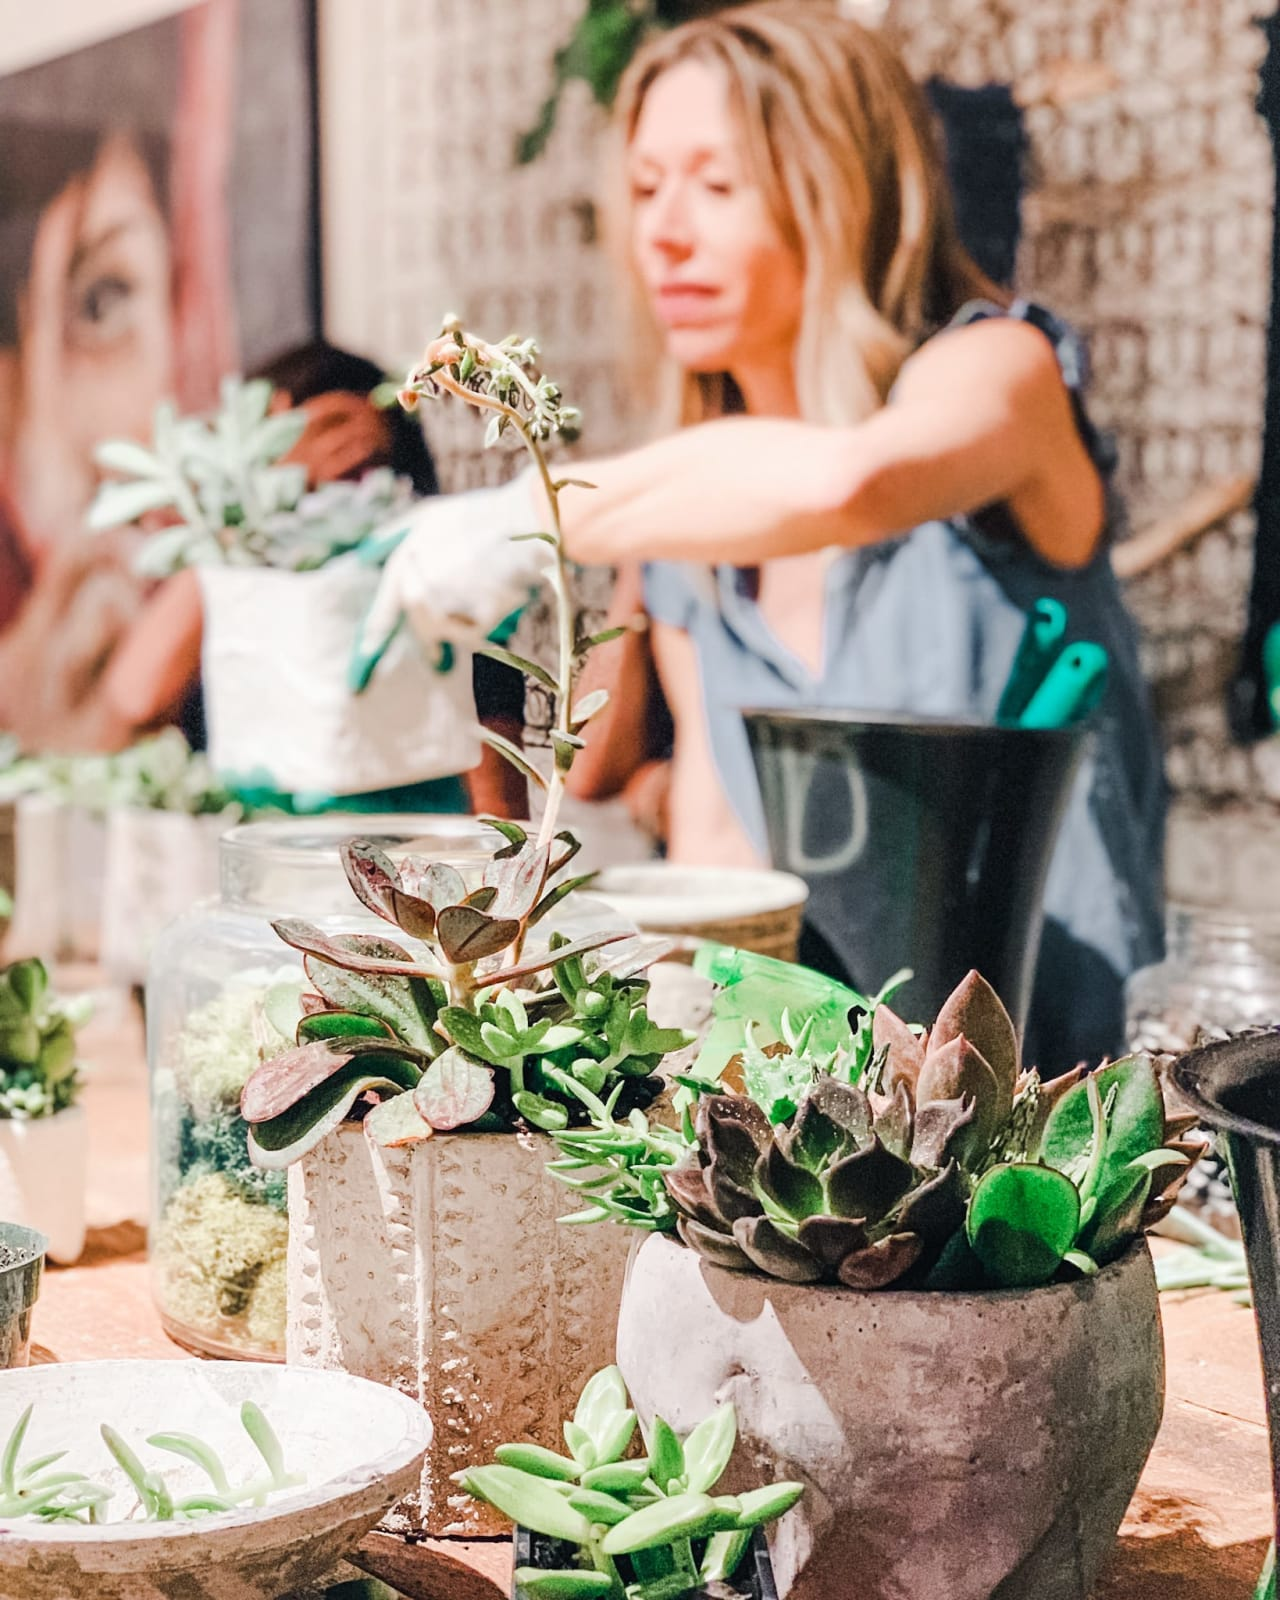 Anne's Easy Guide to Taking Care of Your Houseplants